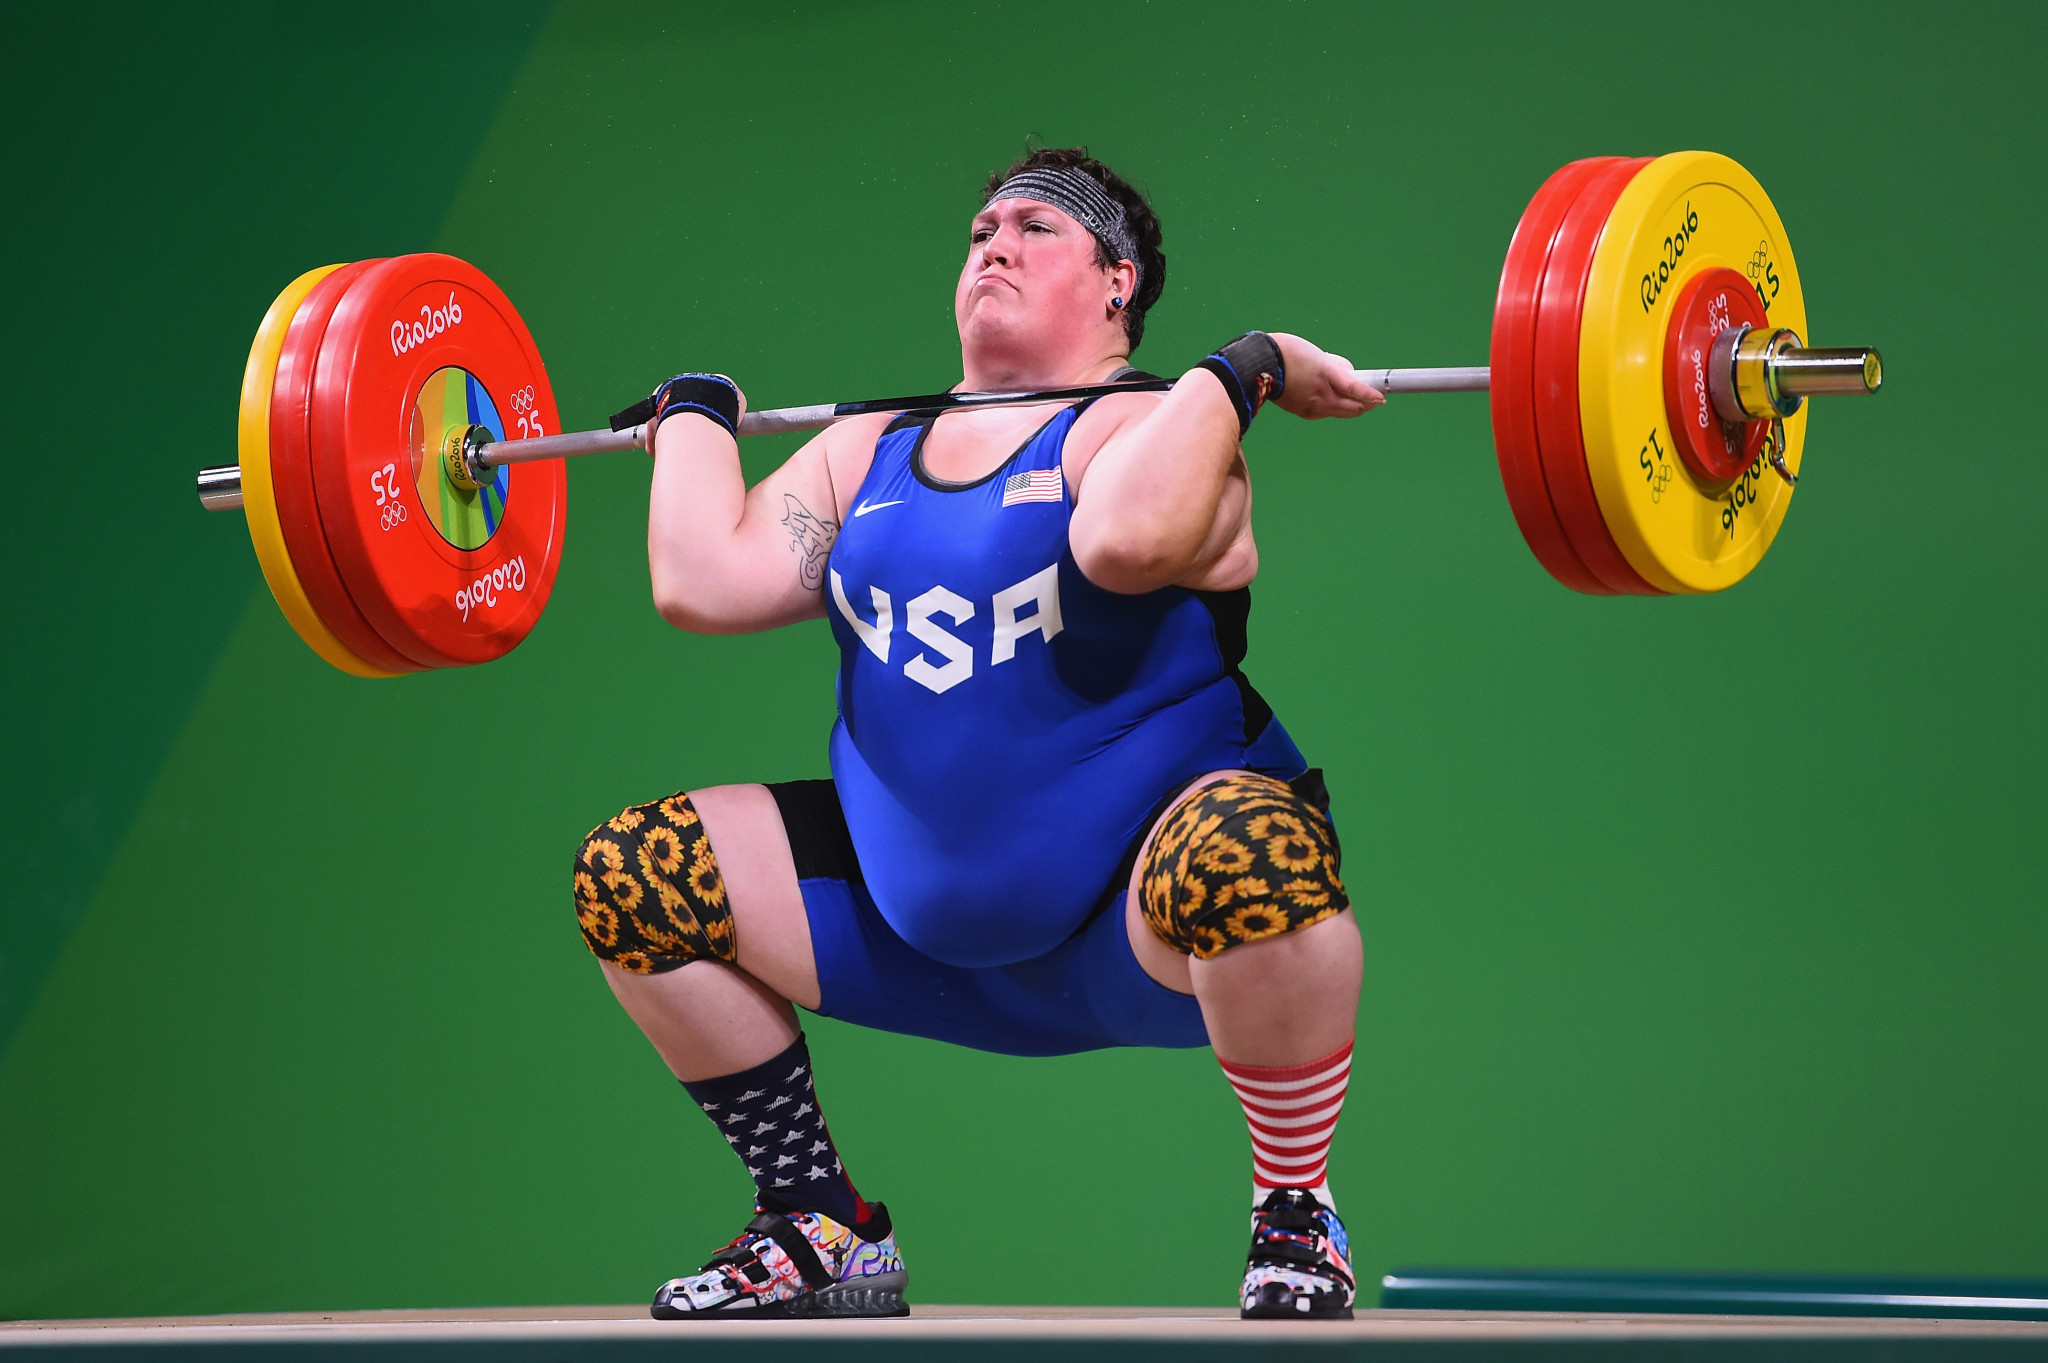 Robles claims three gold medals on final day at Pan American Weightlifting Championships